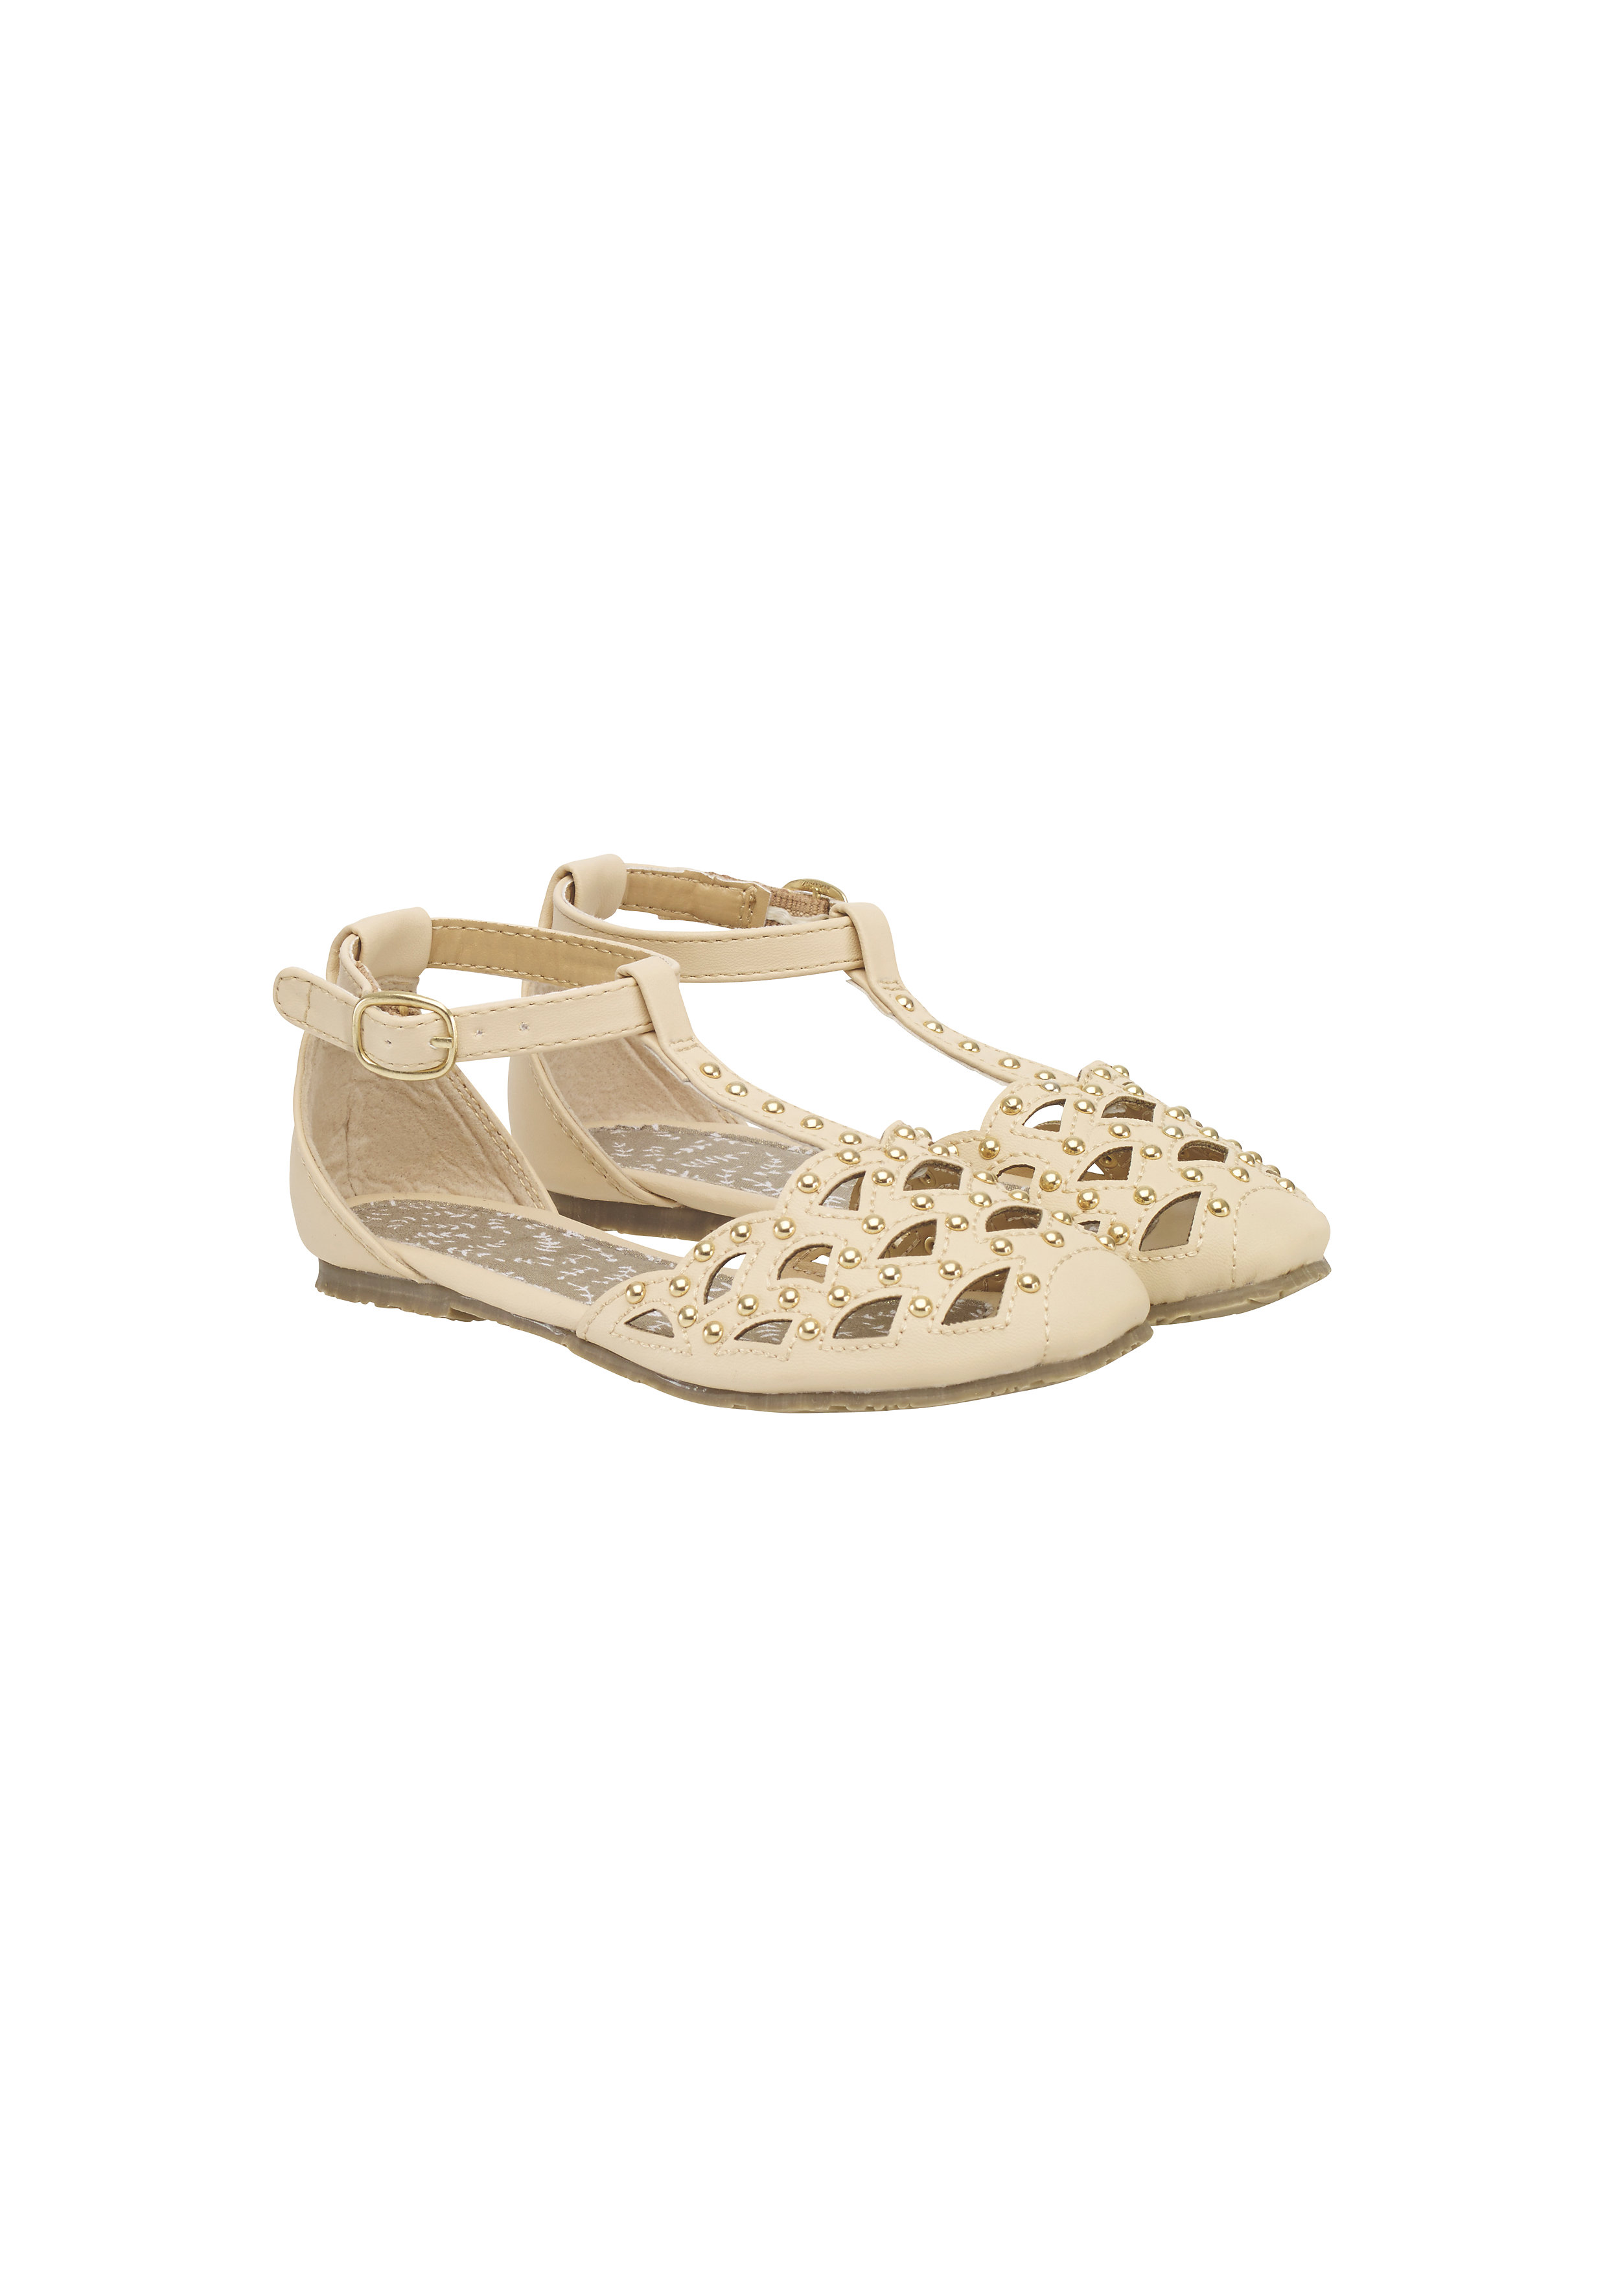 Mothercare | Girls Shoes Cut Out Design With Studs - Pink